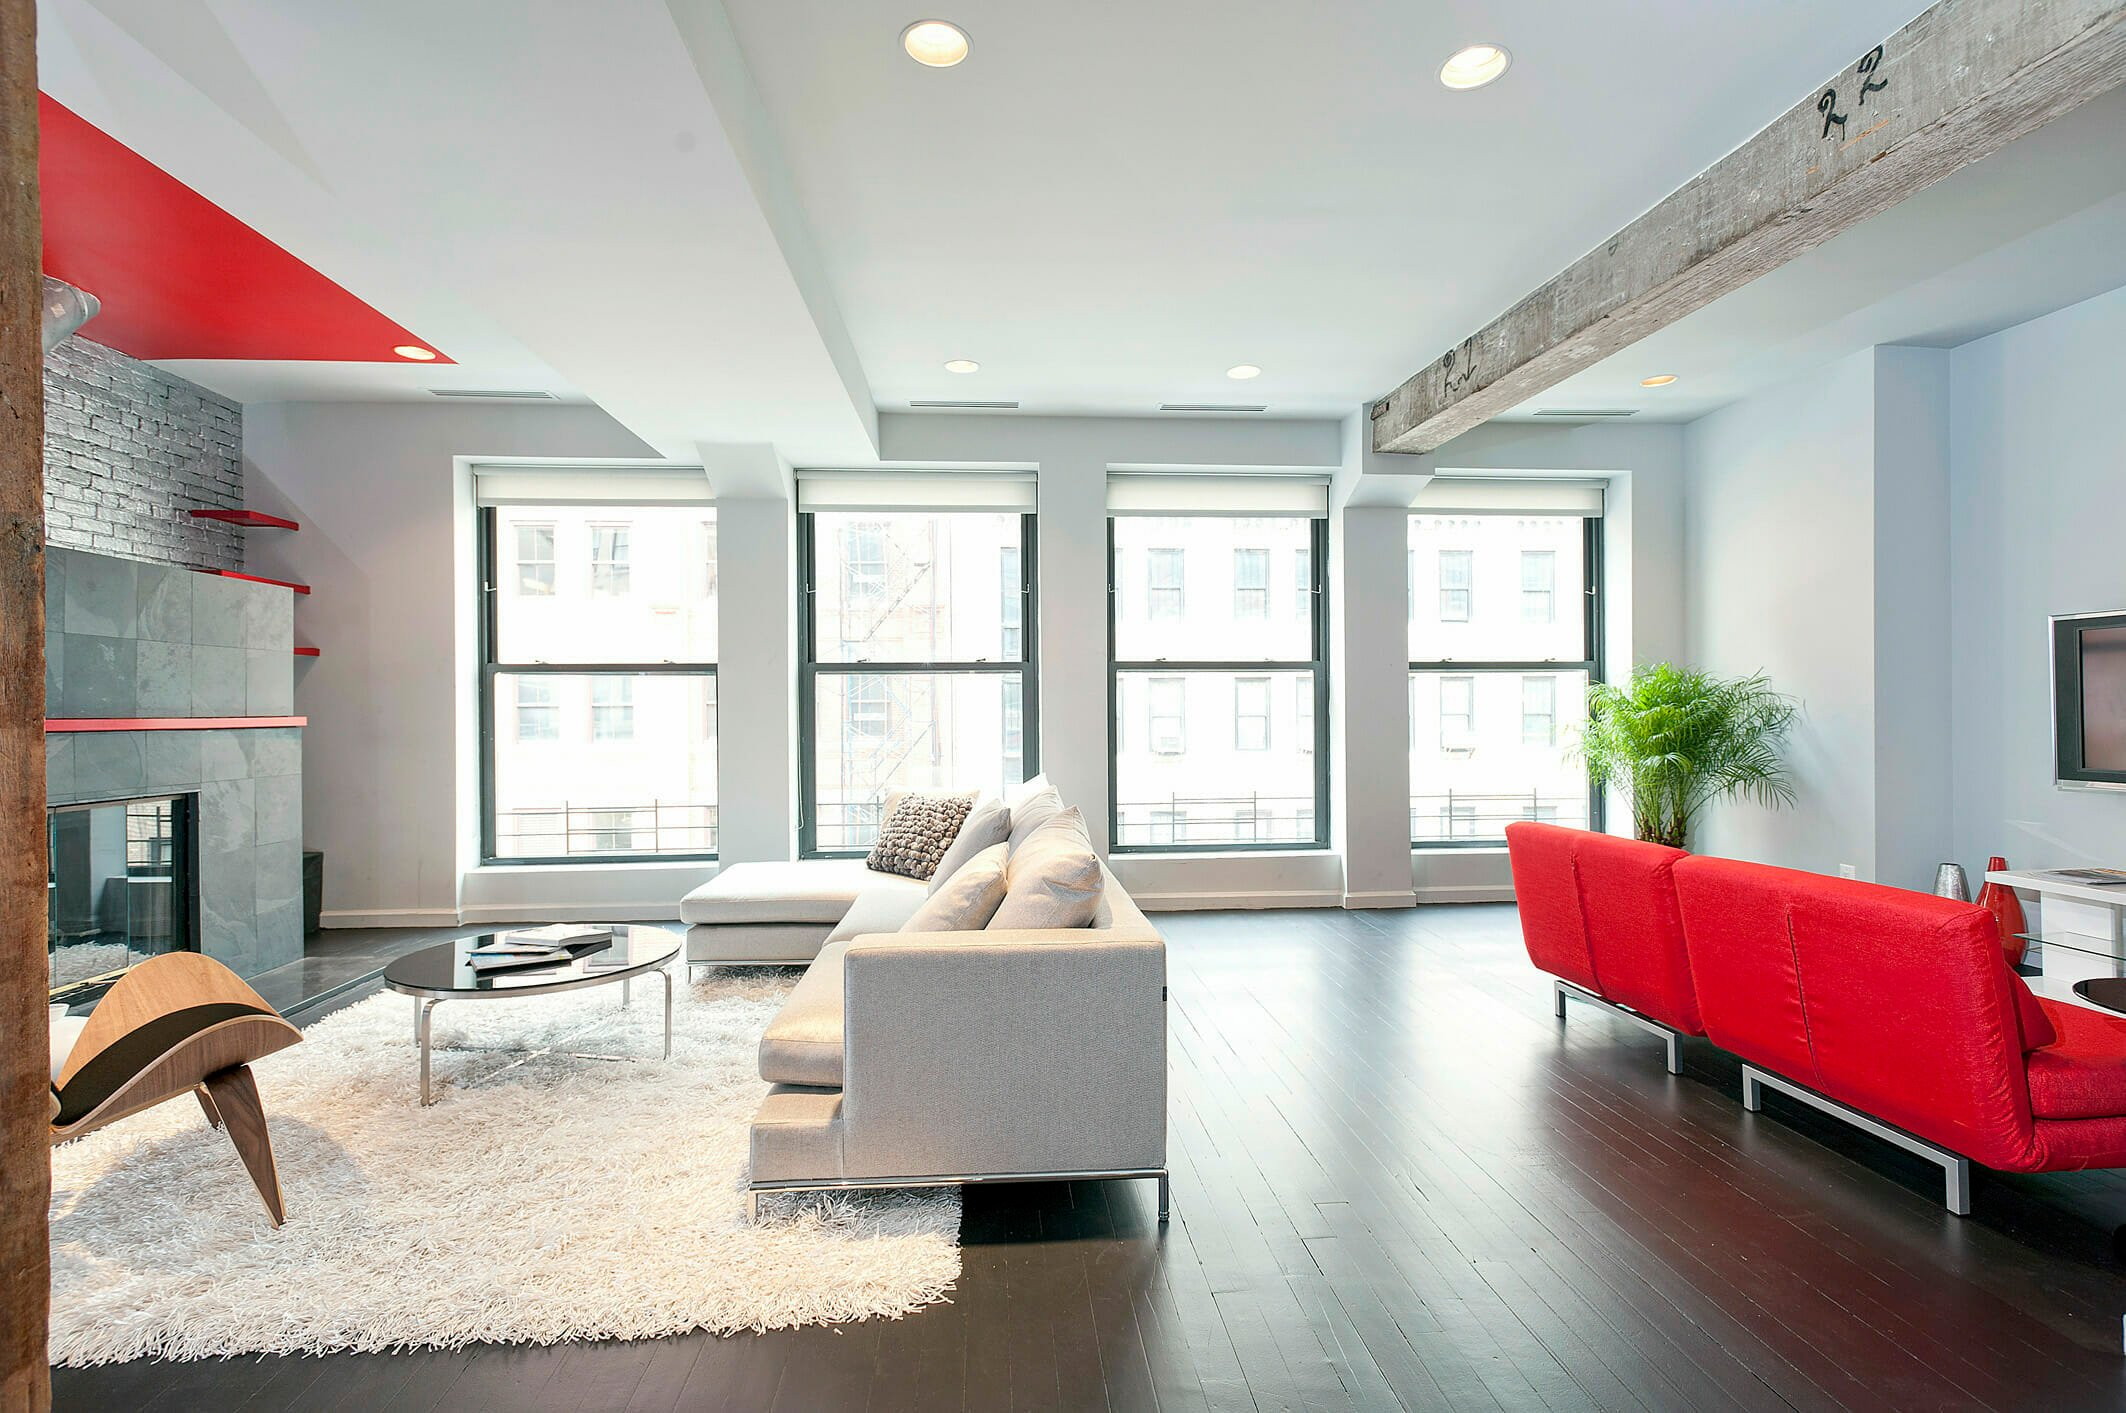 New York loft decorating style with pops of red